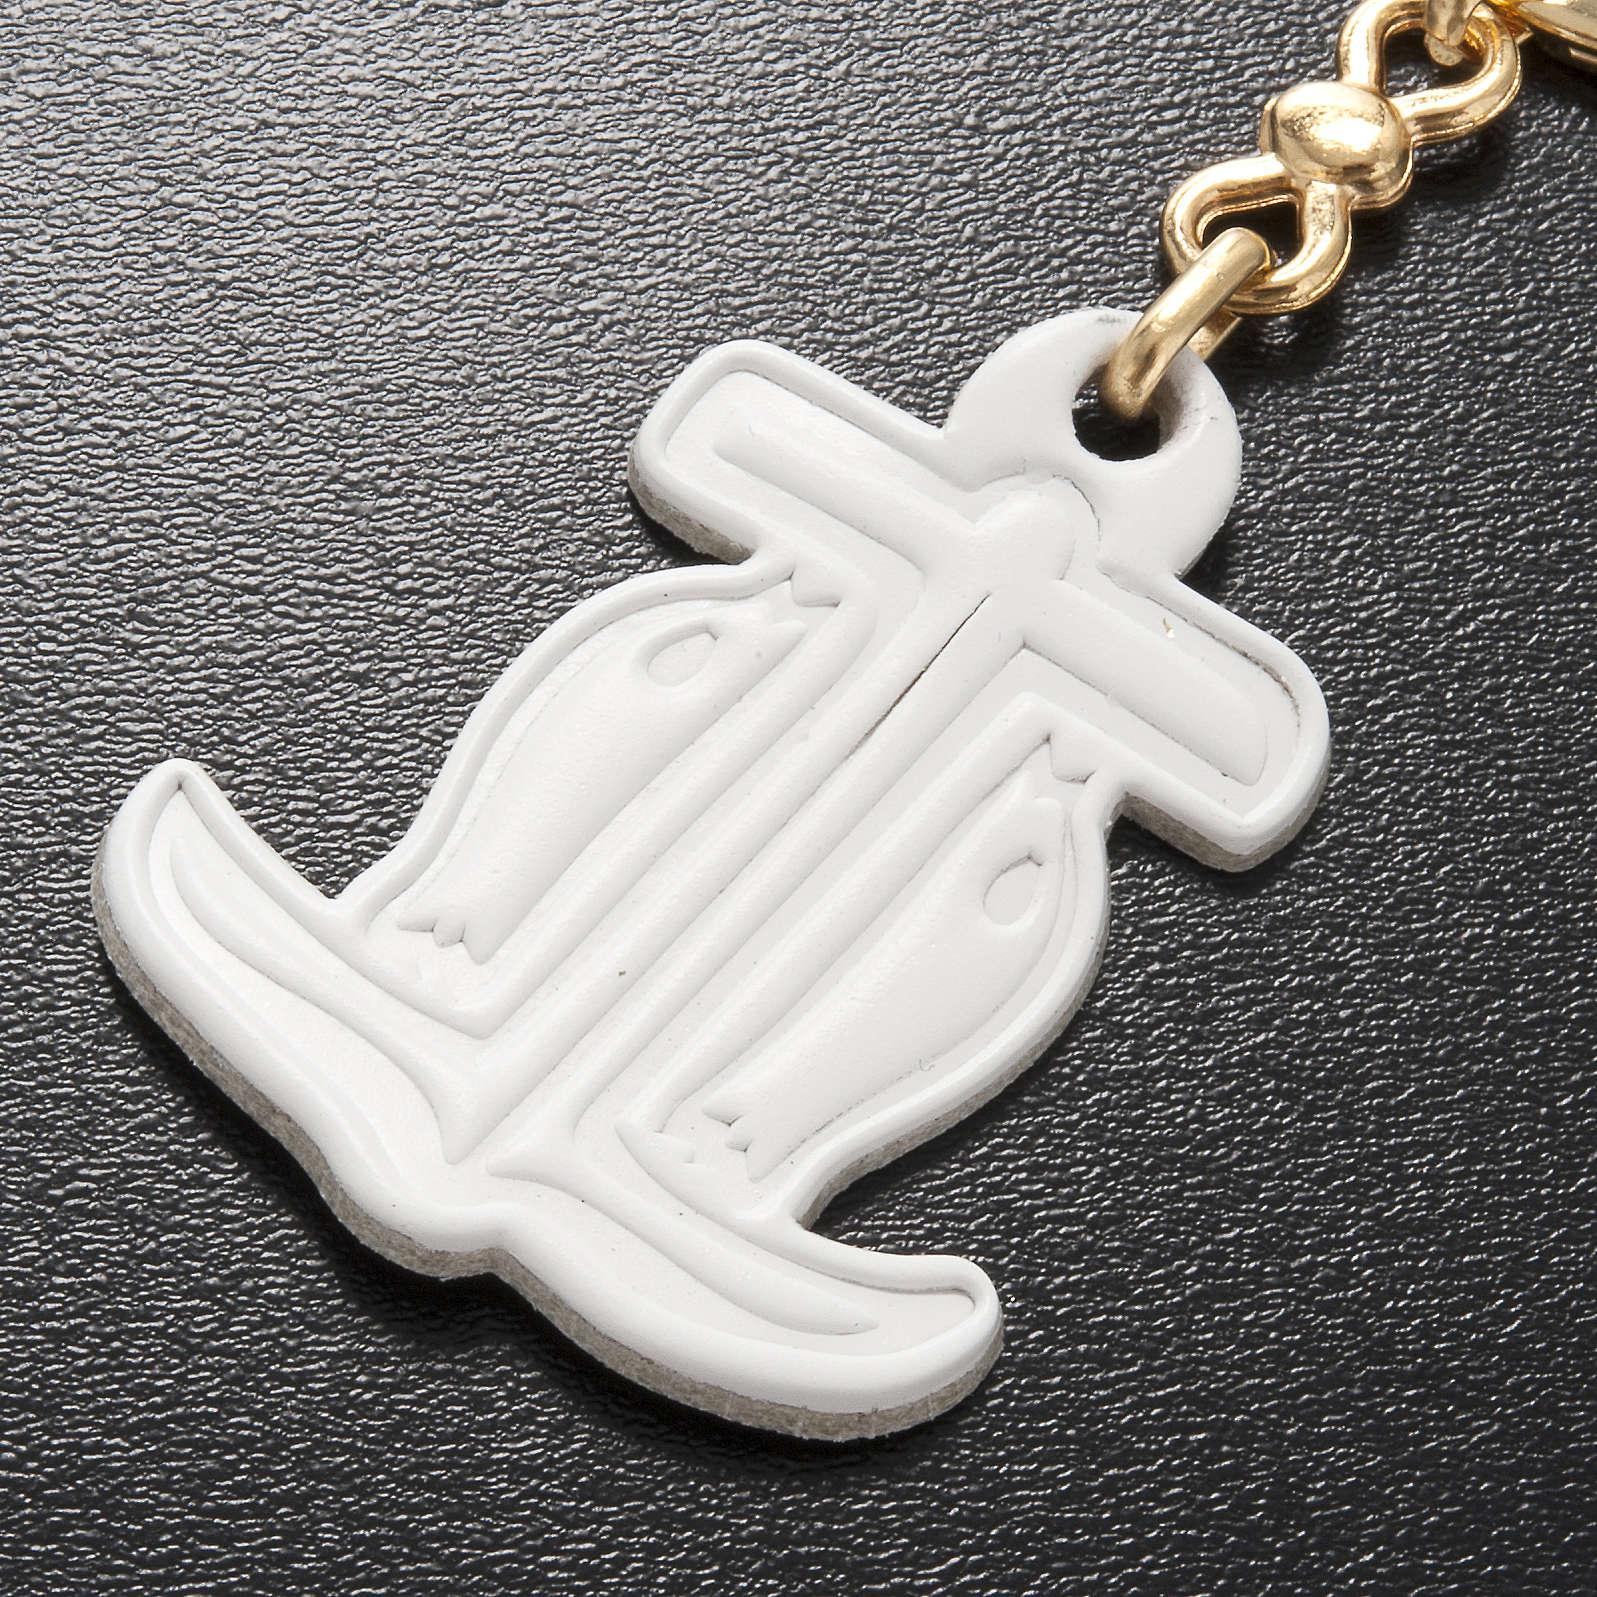 Hope anchor leather key ring 3